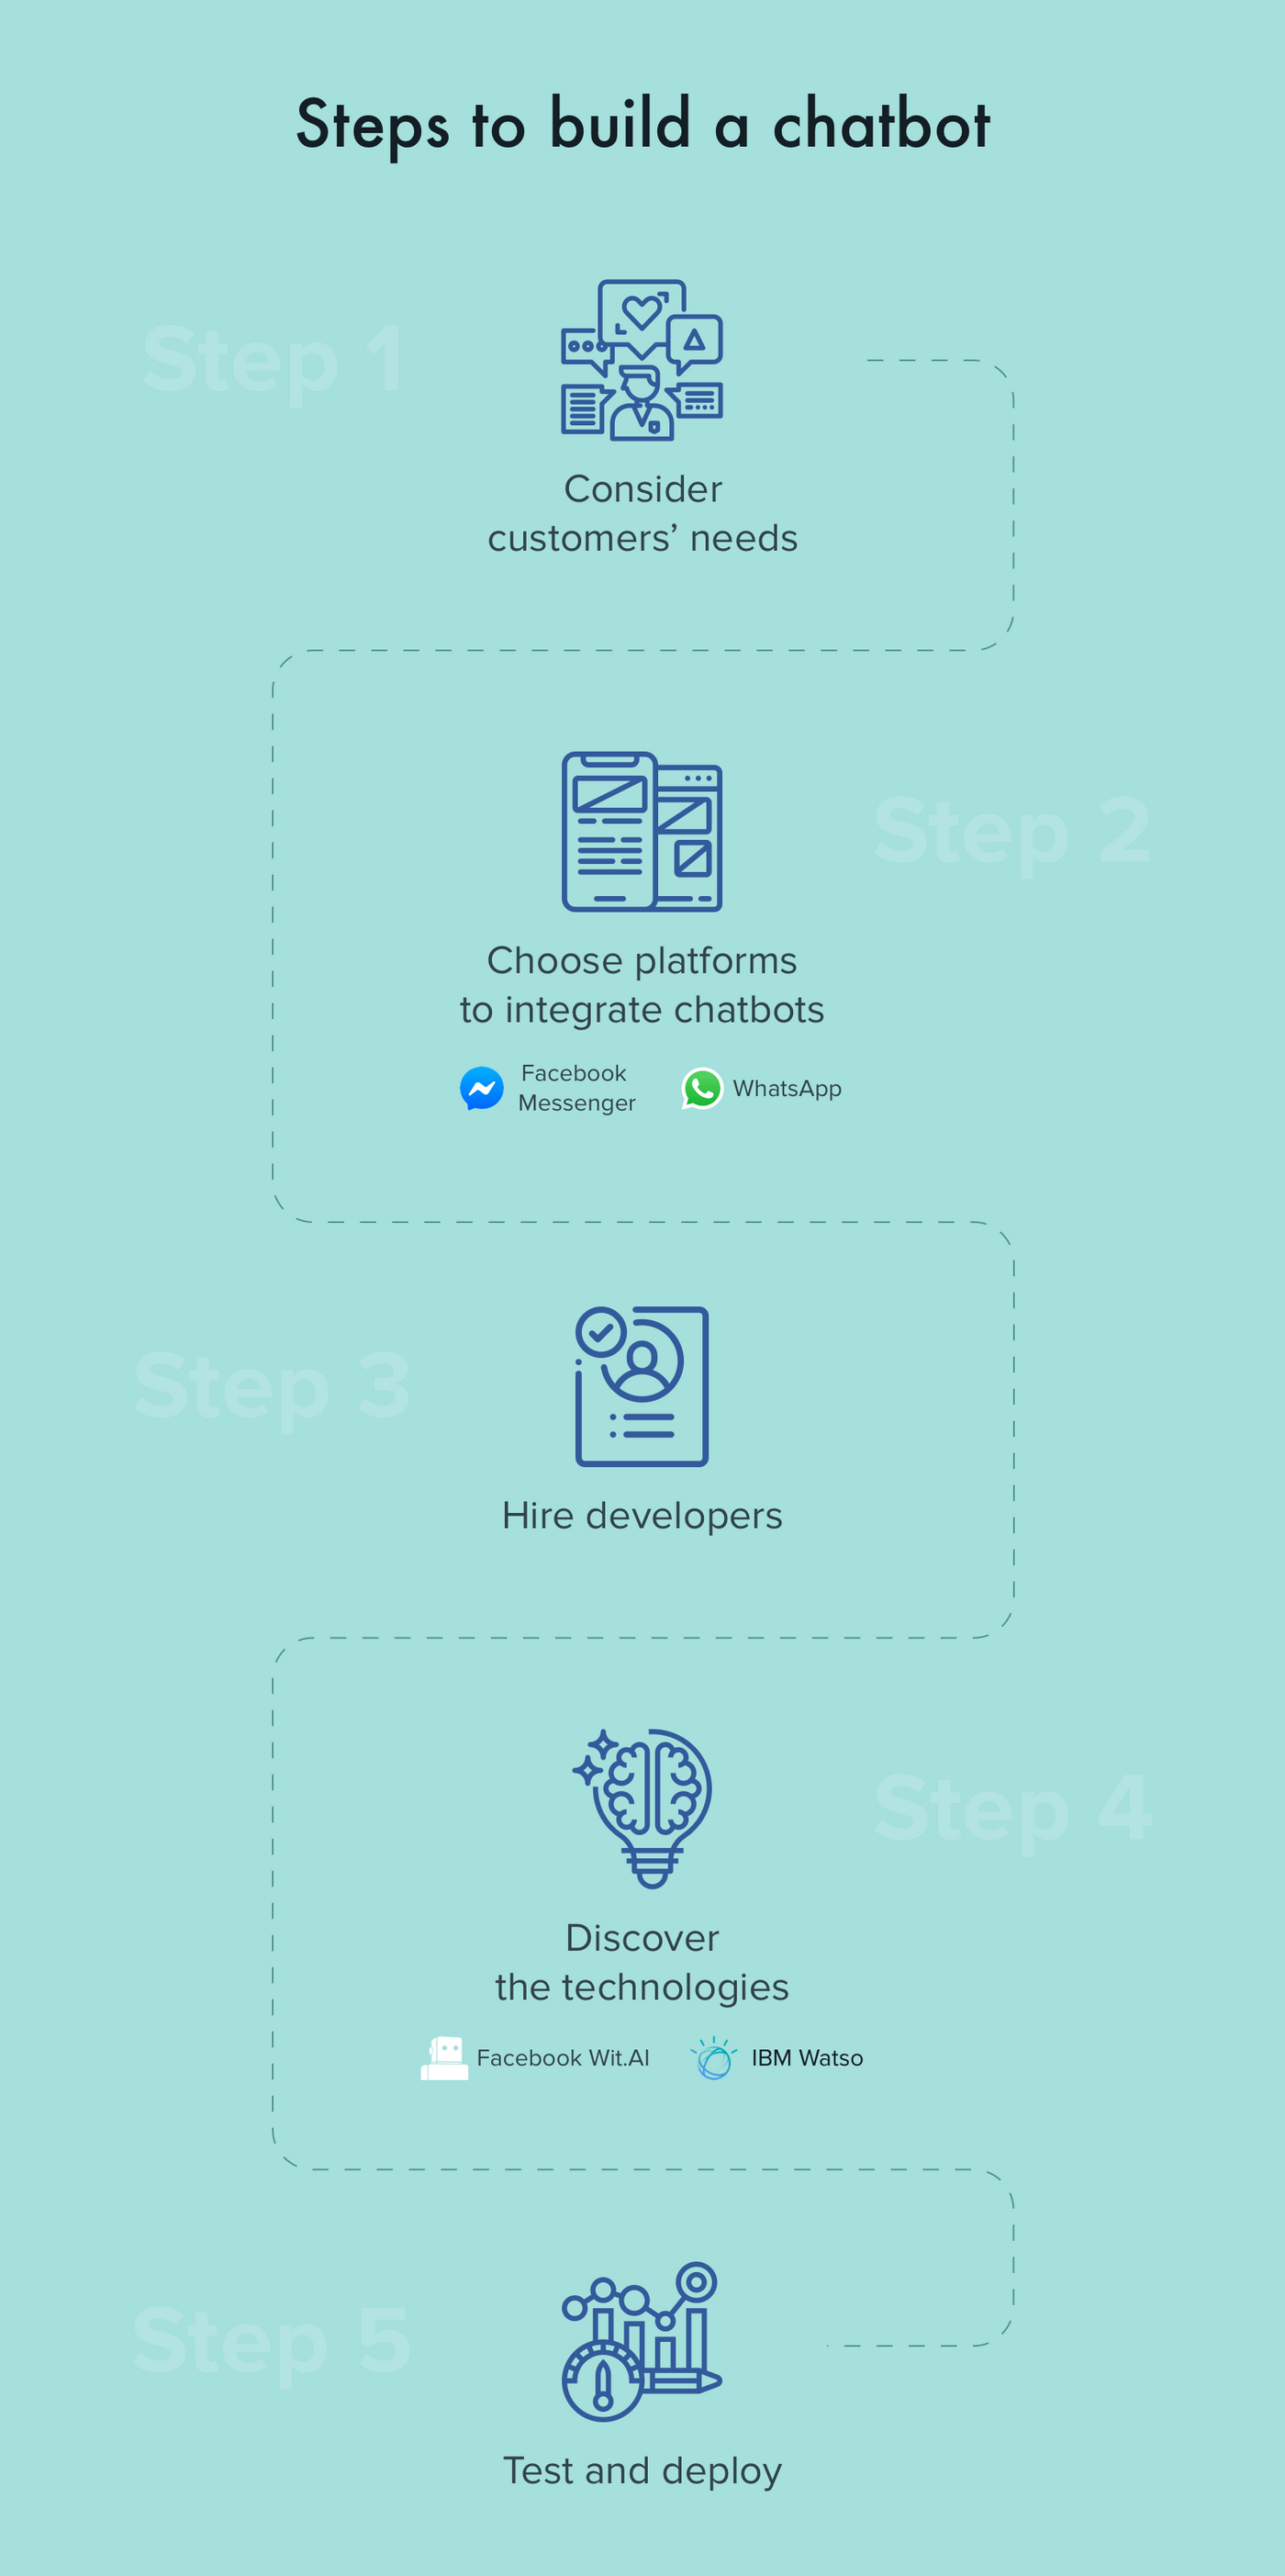 Steps to make a chatbot